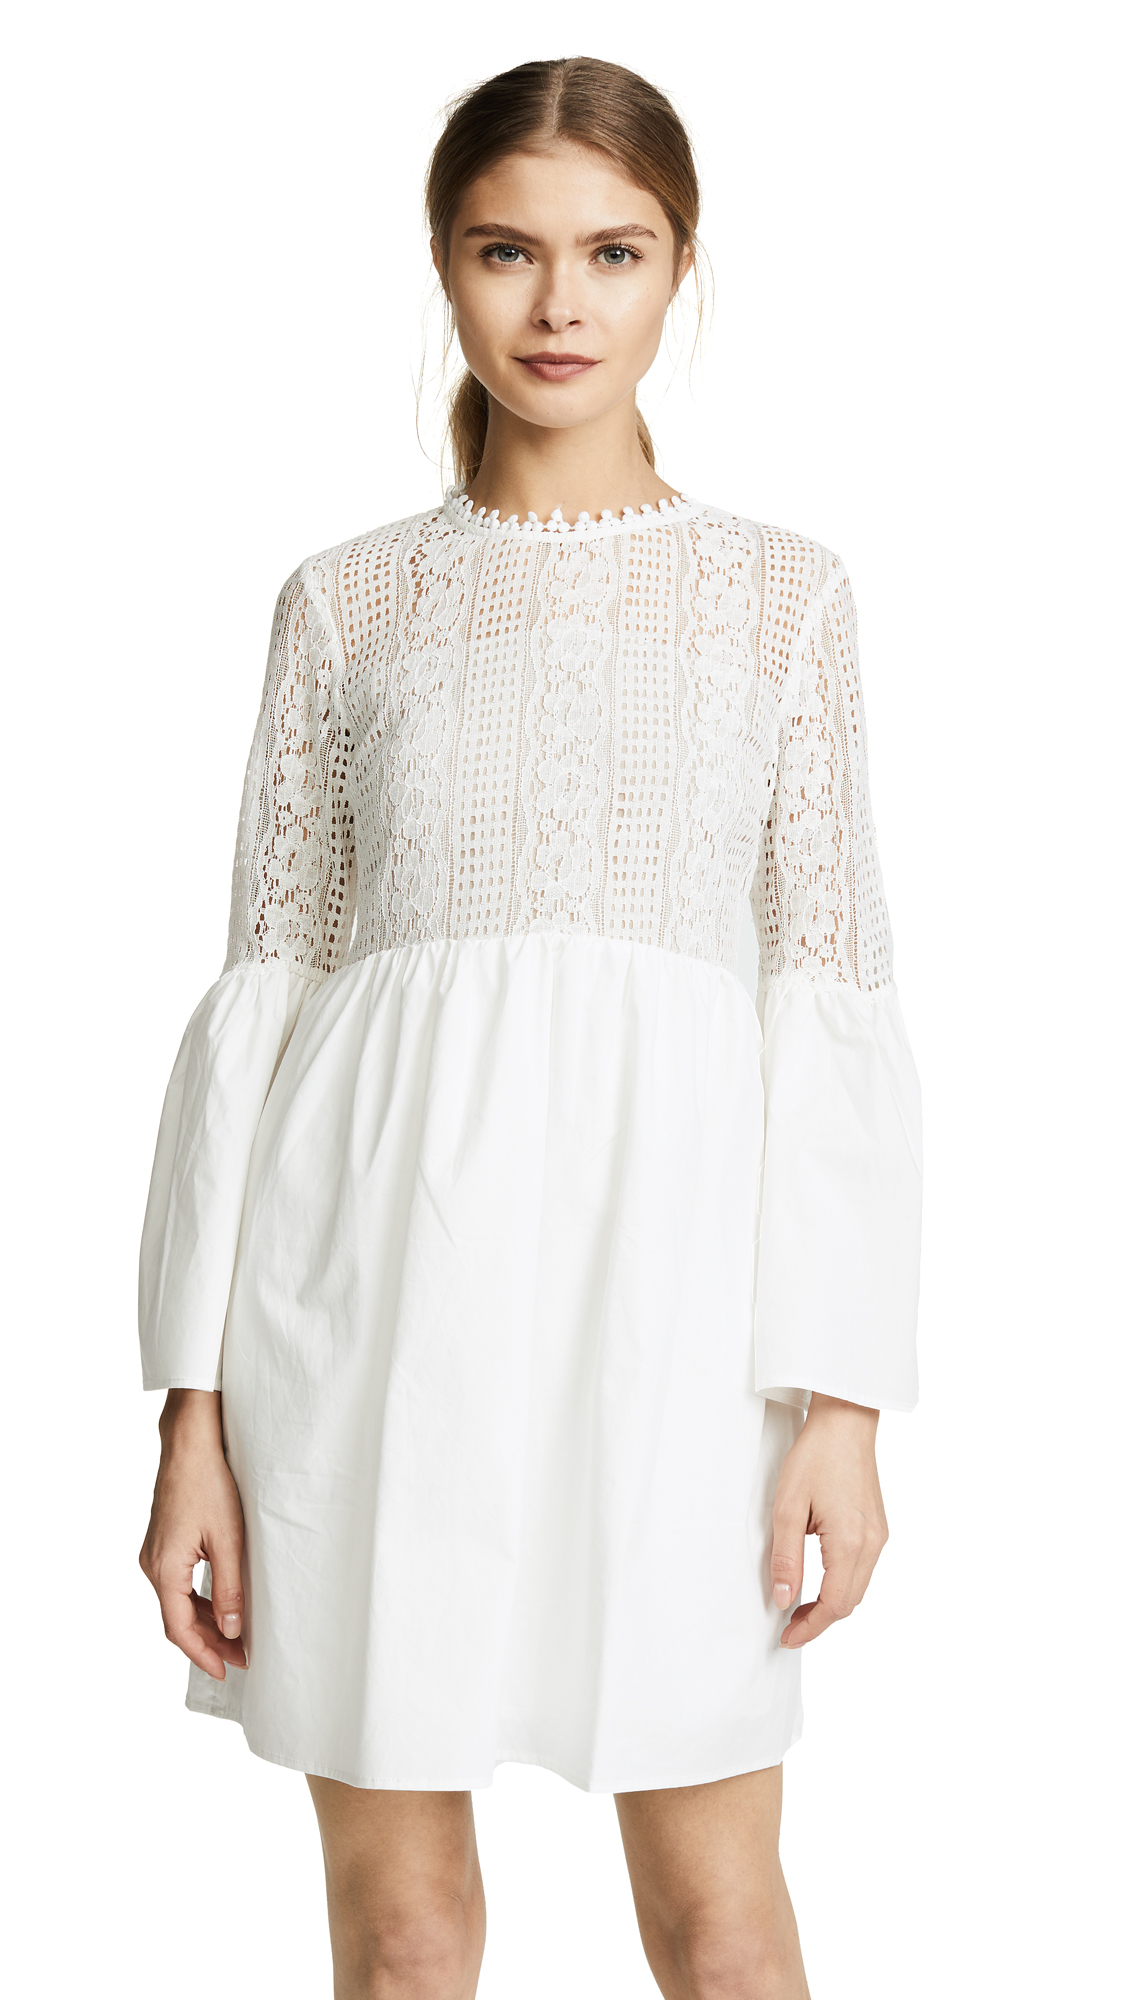 endless rose Lace Mini Dress - Off White